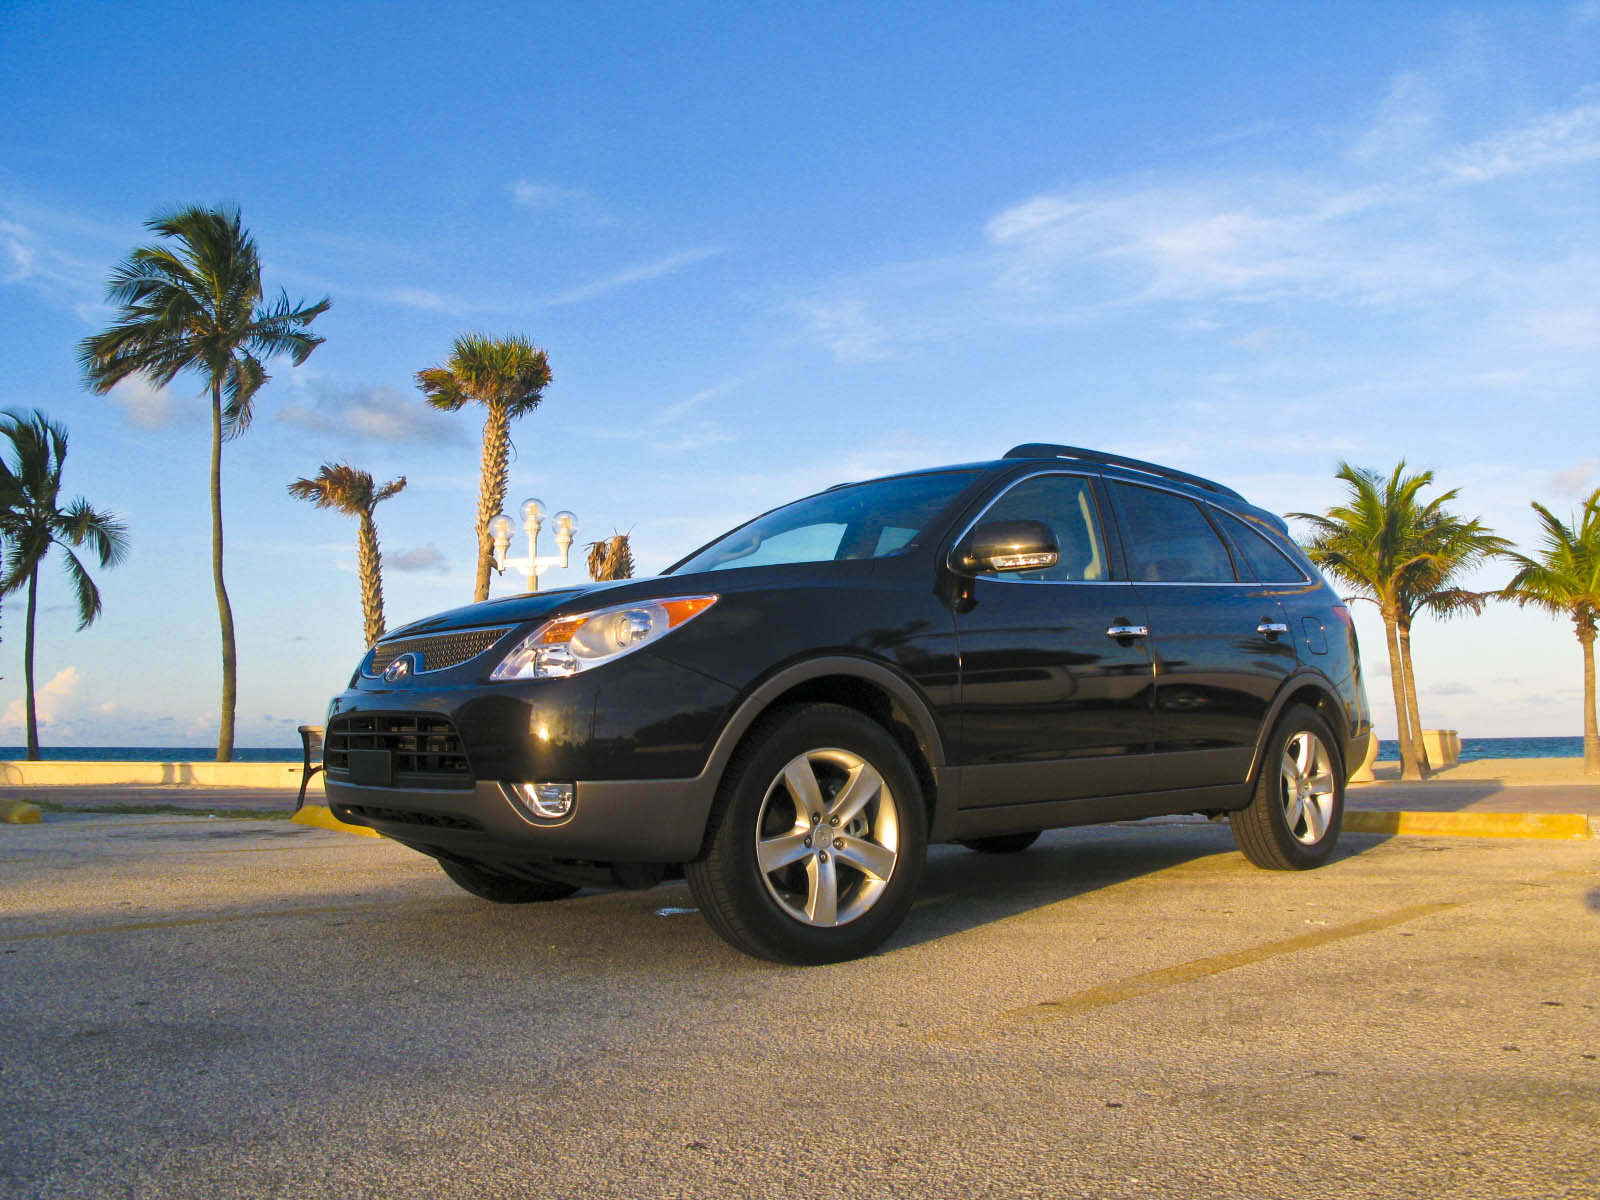 2008 hyundai veracruz review gallery top speed. Black Bedroom Furniture Sets. Home Design Ideas